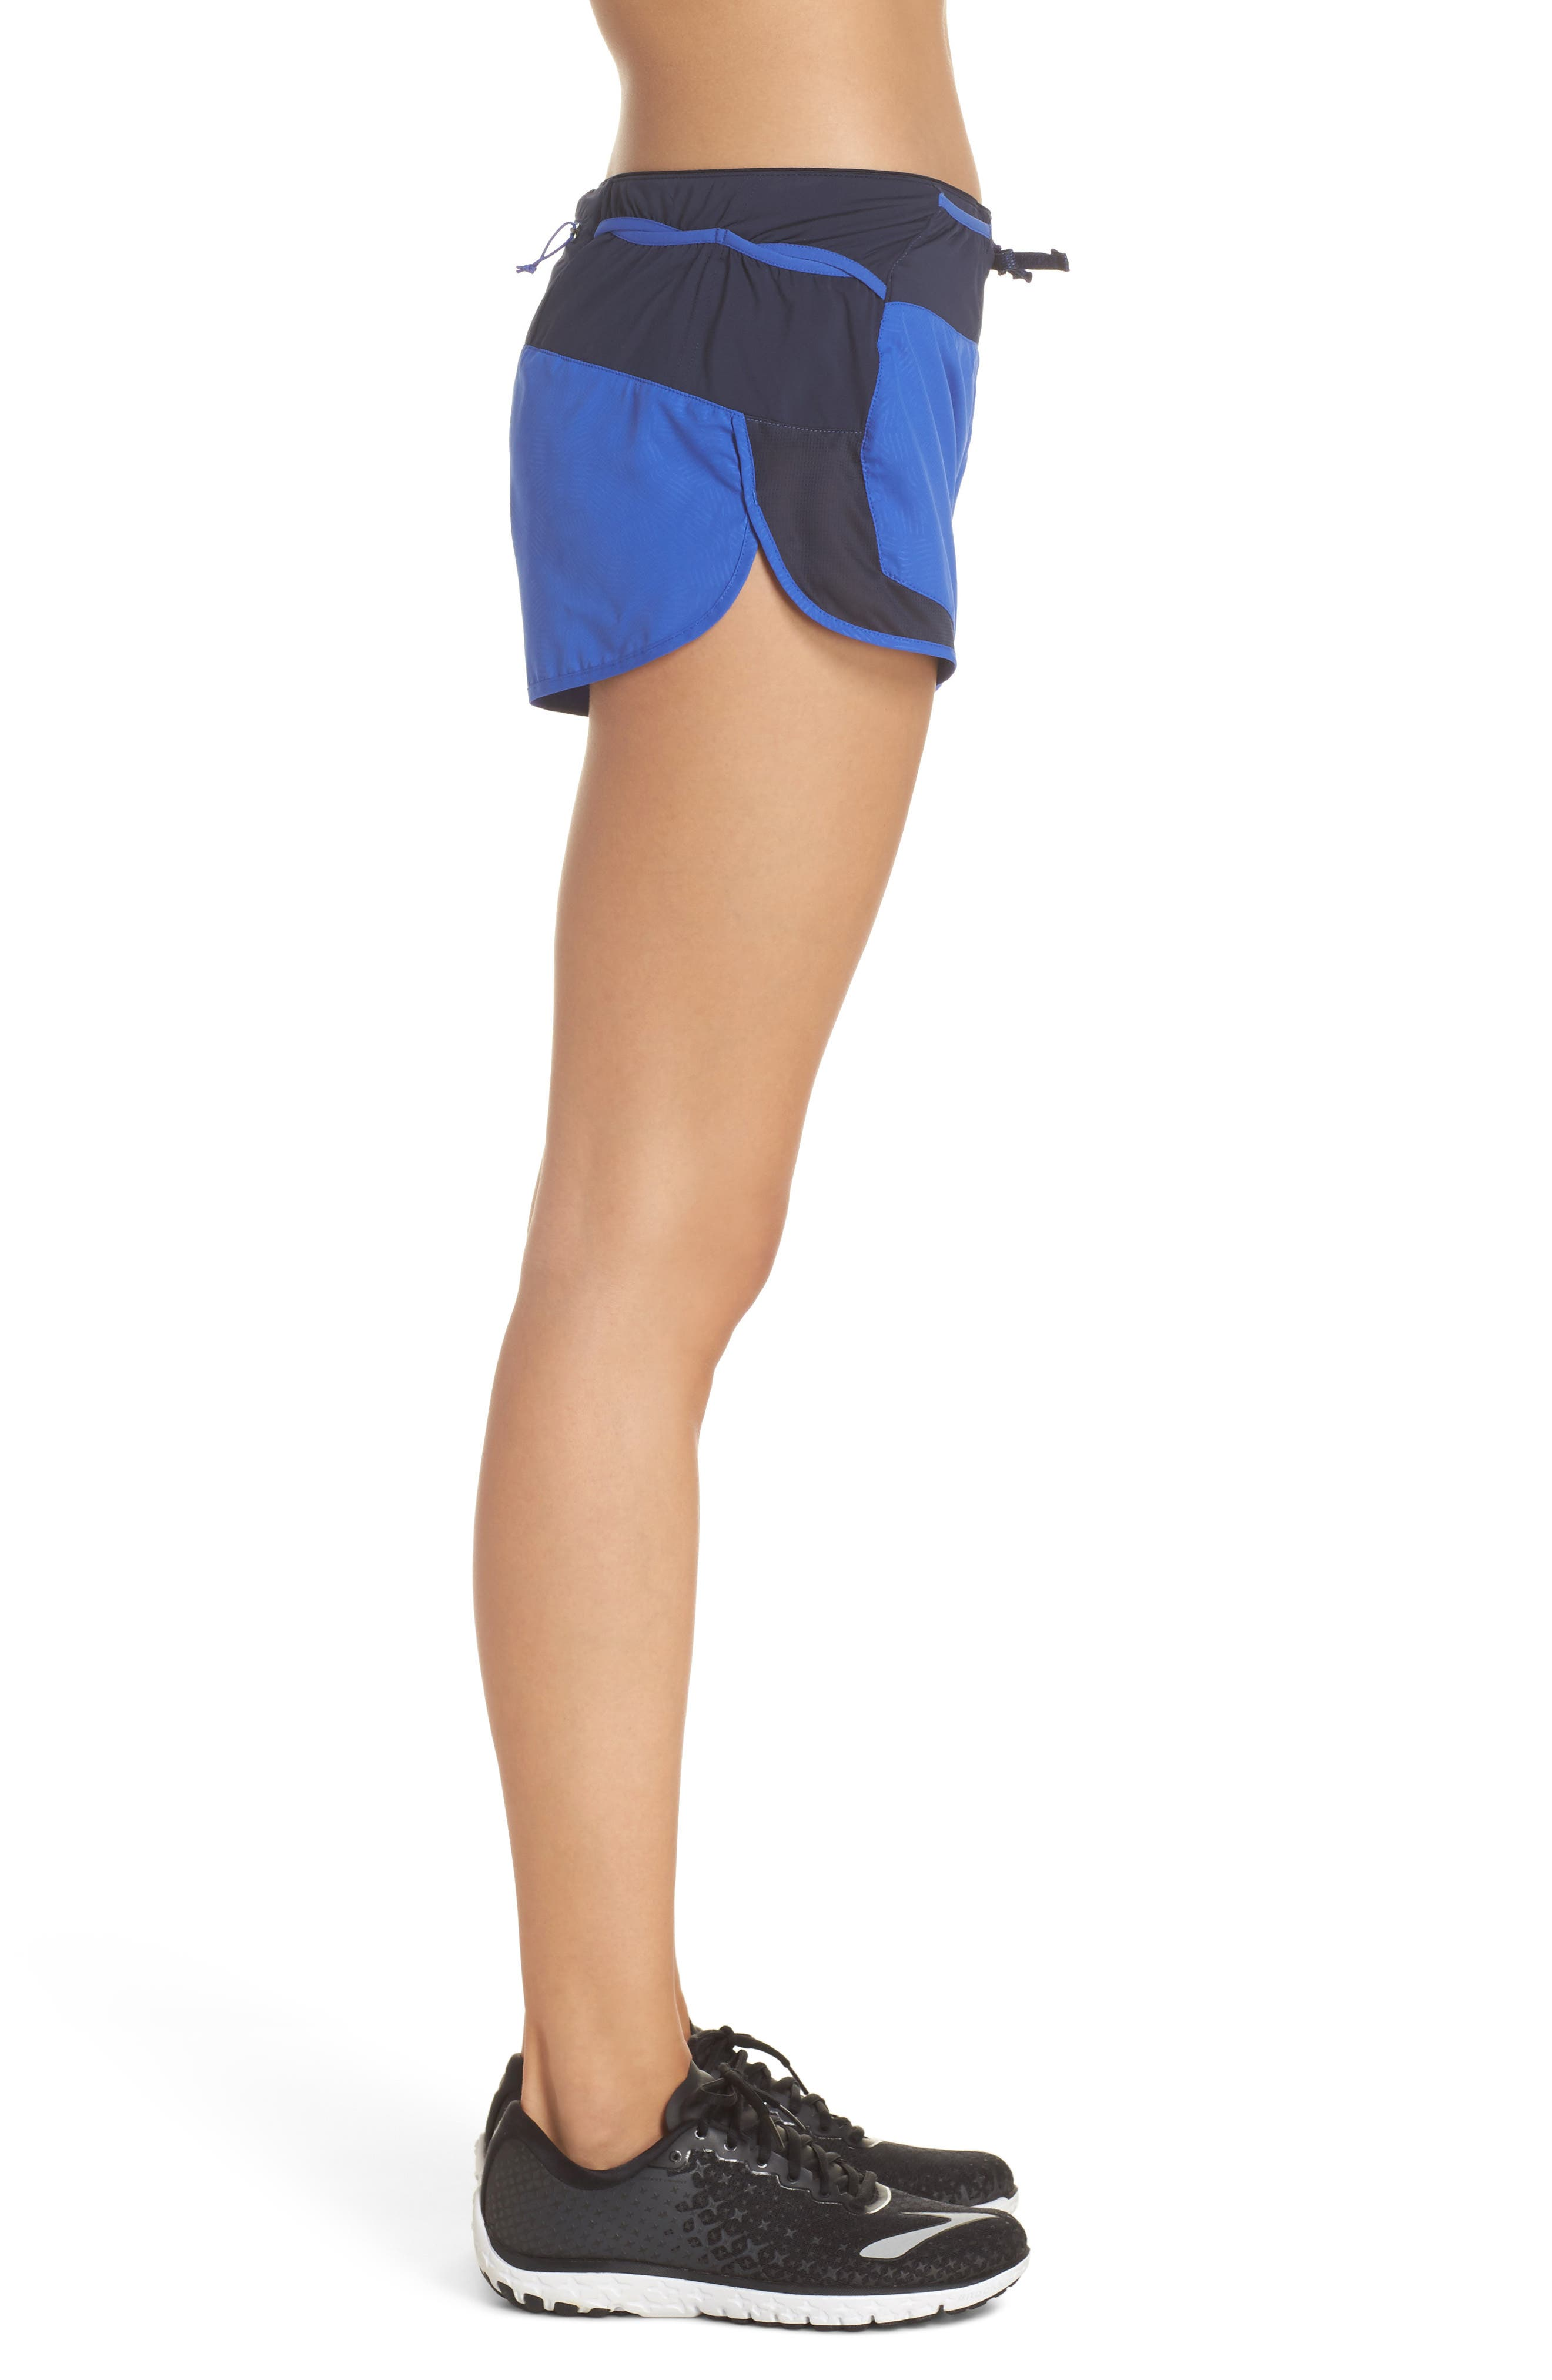 Strider Pro Trail Running Shorts,                             Alternate thumbnail 3, color,                             Hexy - Imperial Blue